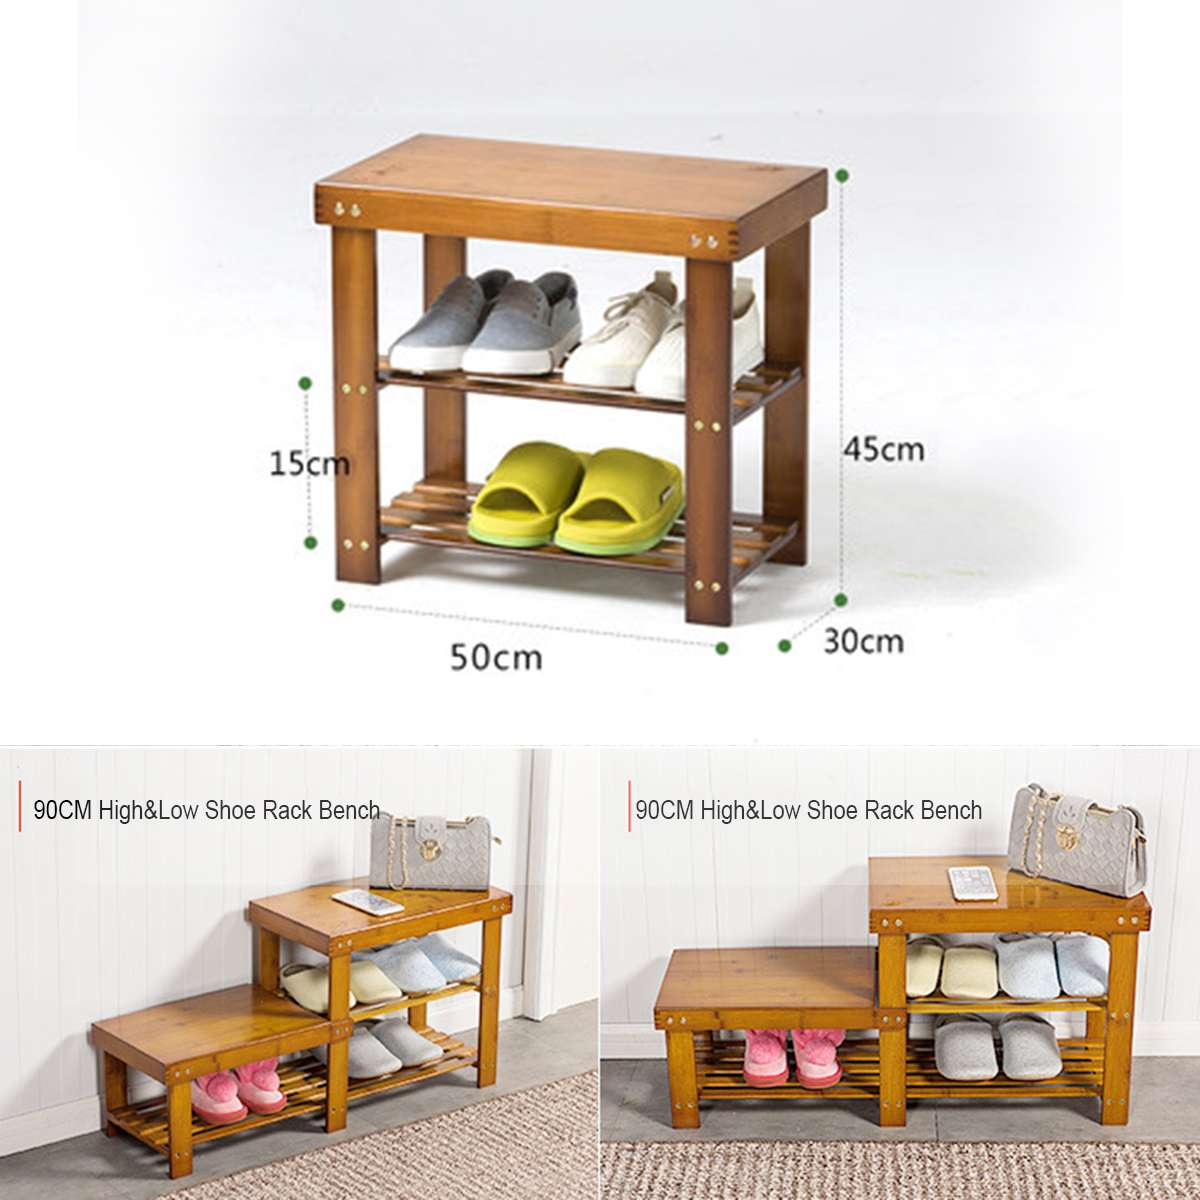 Shoe Stools Wooden Multi Purpose Shoe Rack Storage Benches Stools Porch Living Room Door Convenient Multi Layer Shoe Organizer